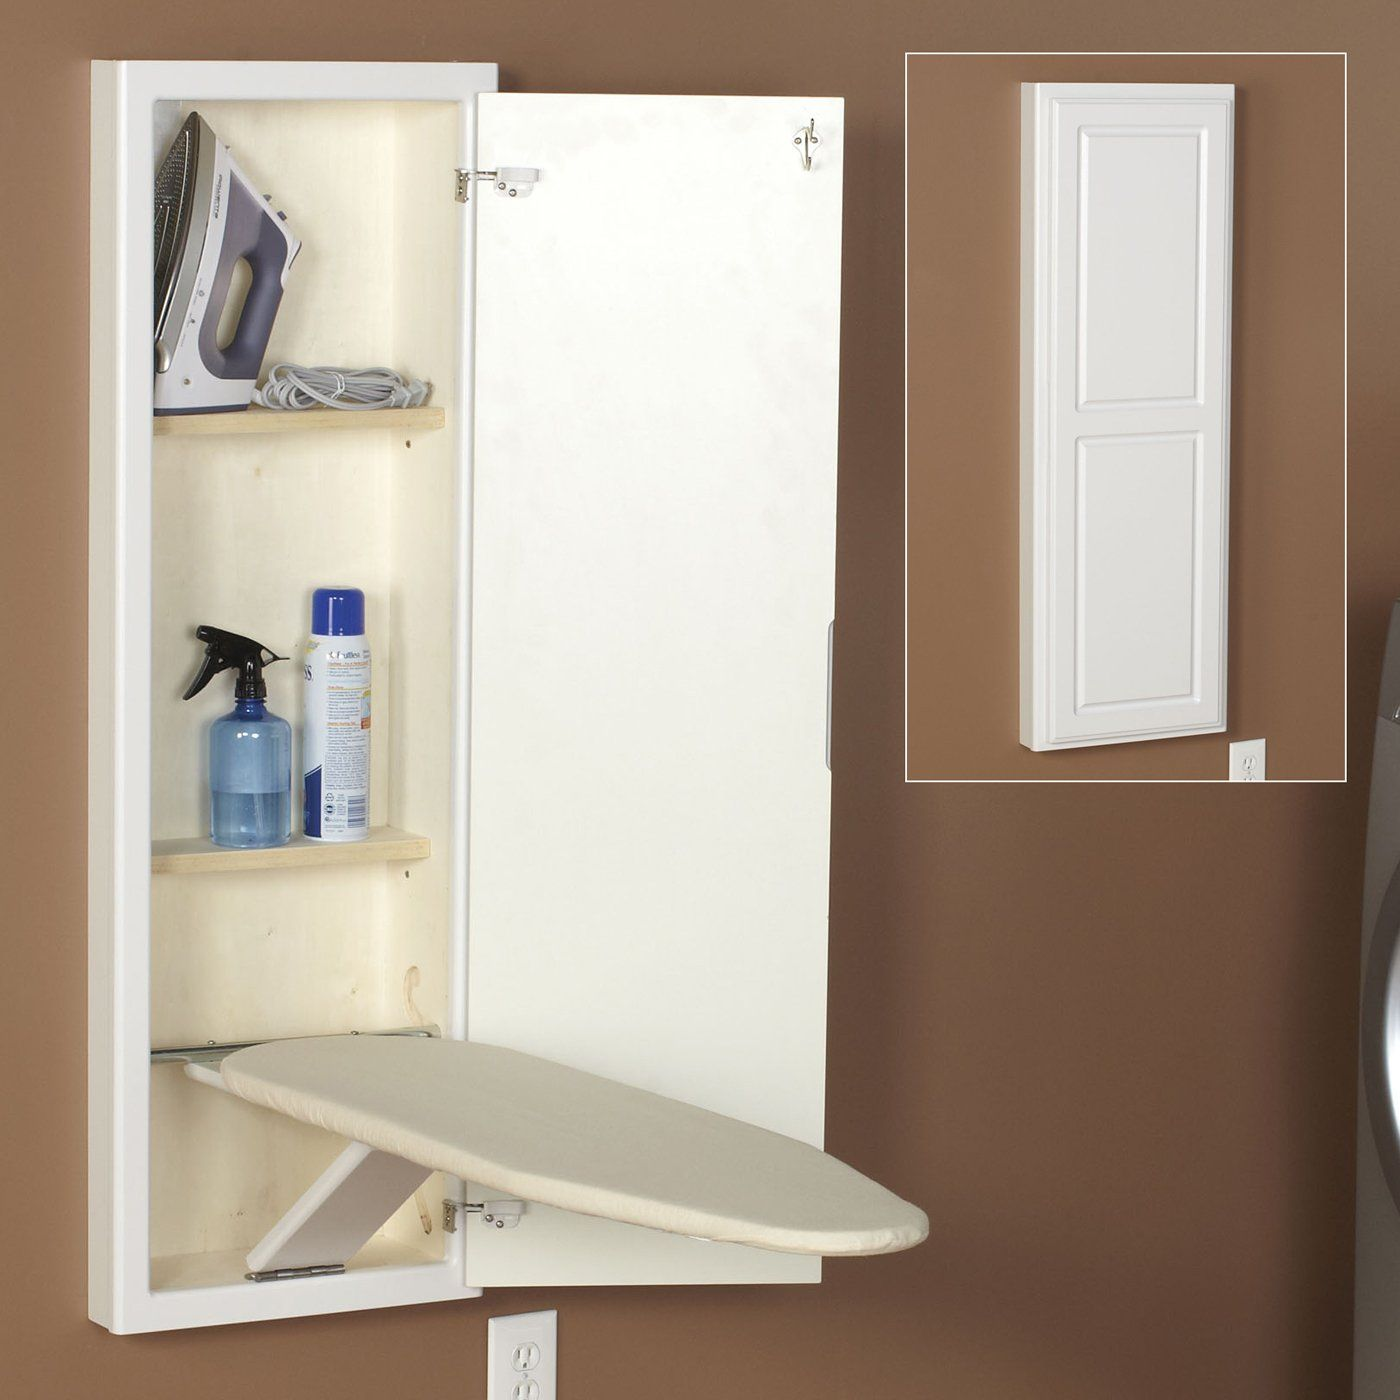 Household Essentials 18100 1 Stowaway In Wall Ironing Board Wall